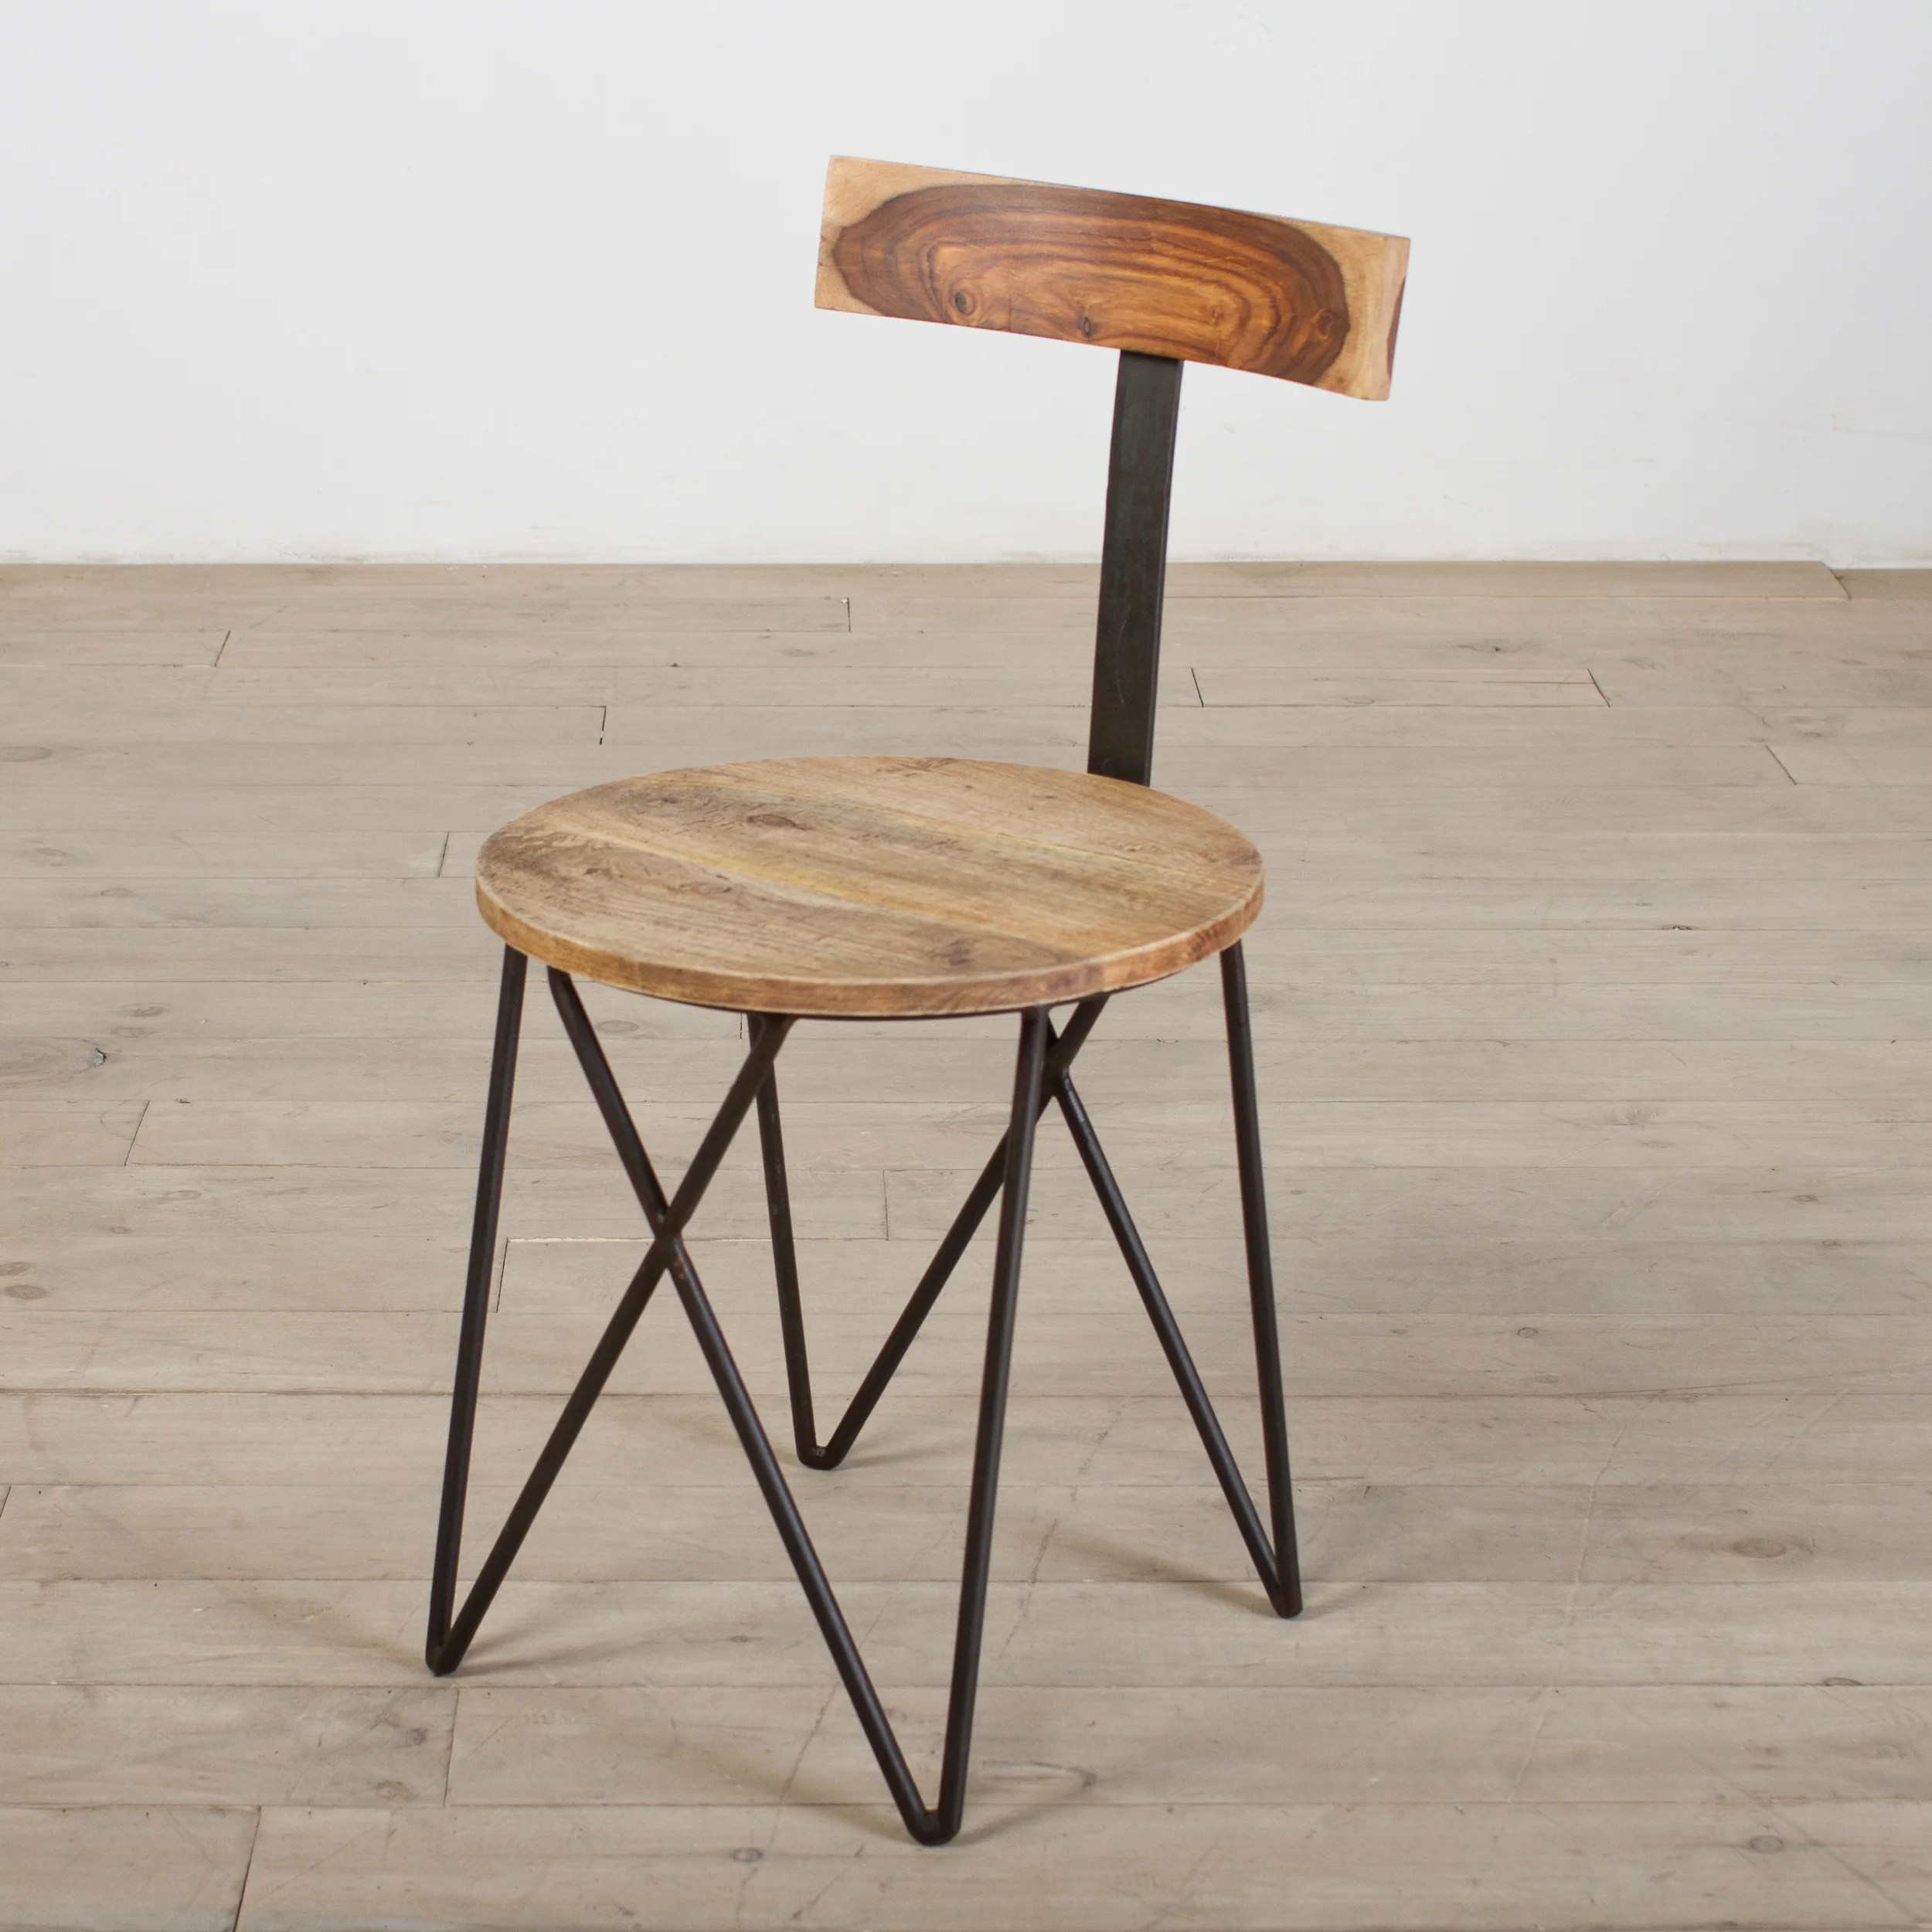 wooden chairs with arms india desk chair yew shop dudhwa free shipping today overstock thumbnail